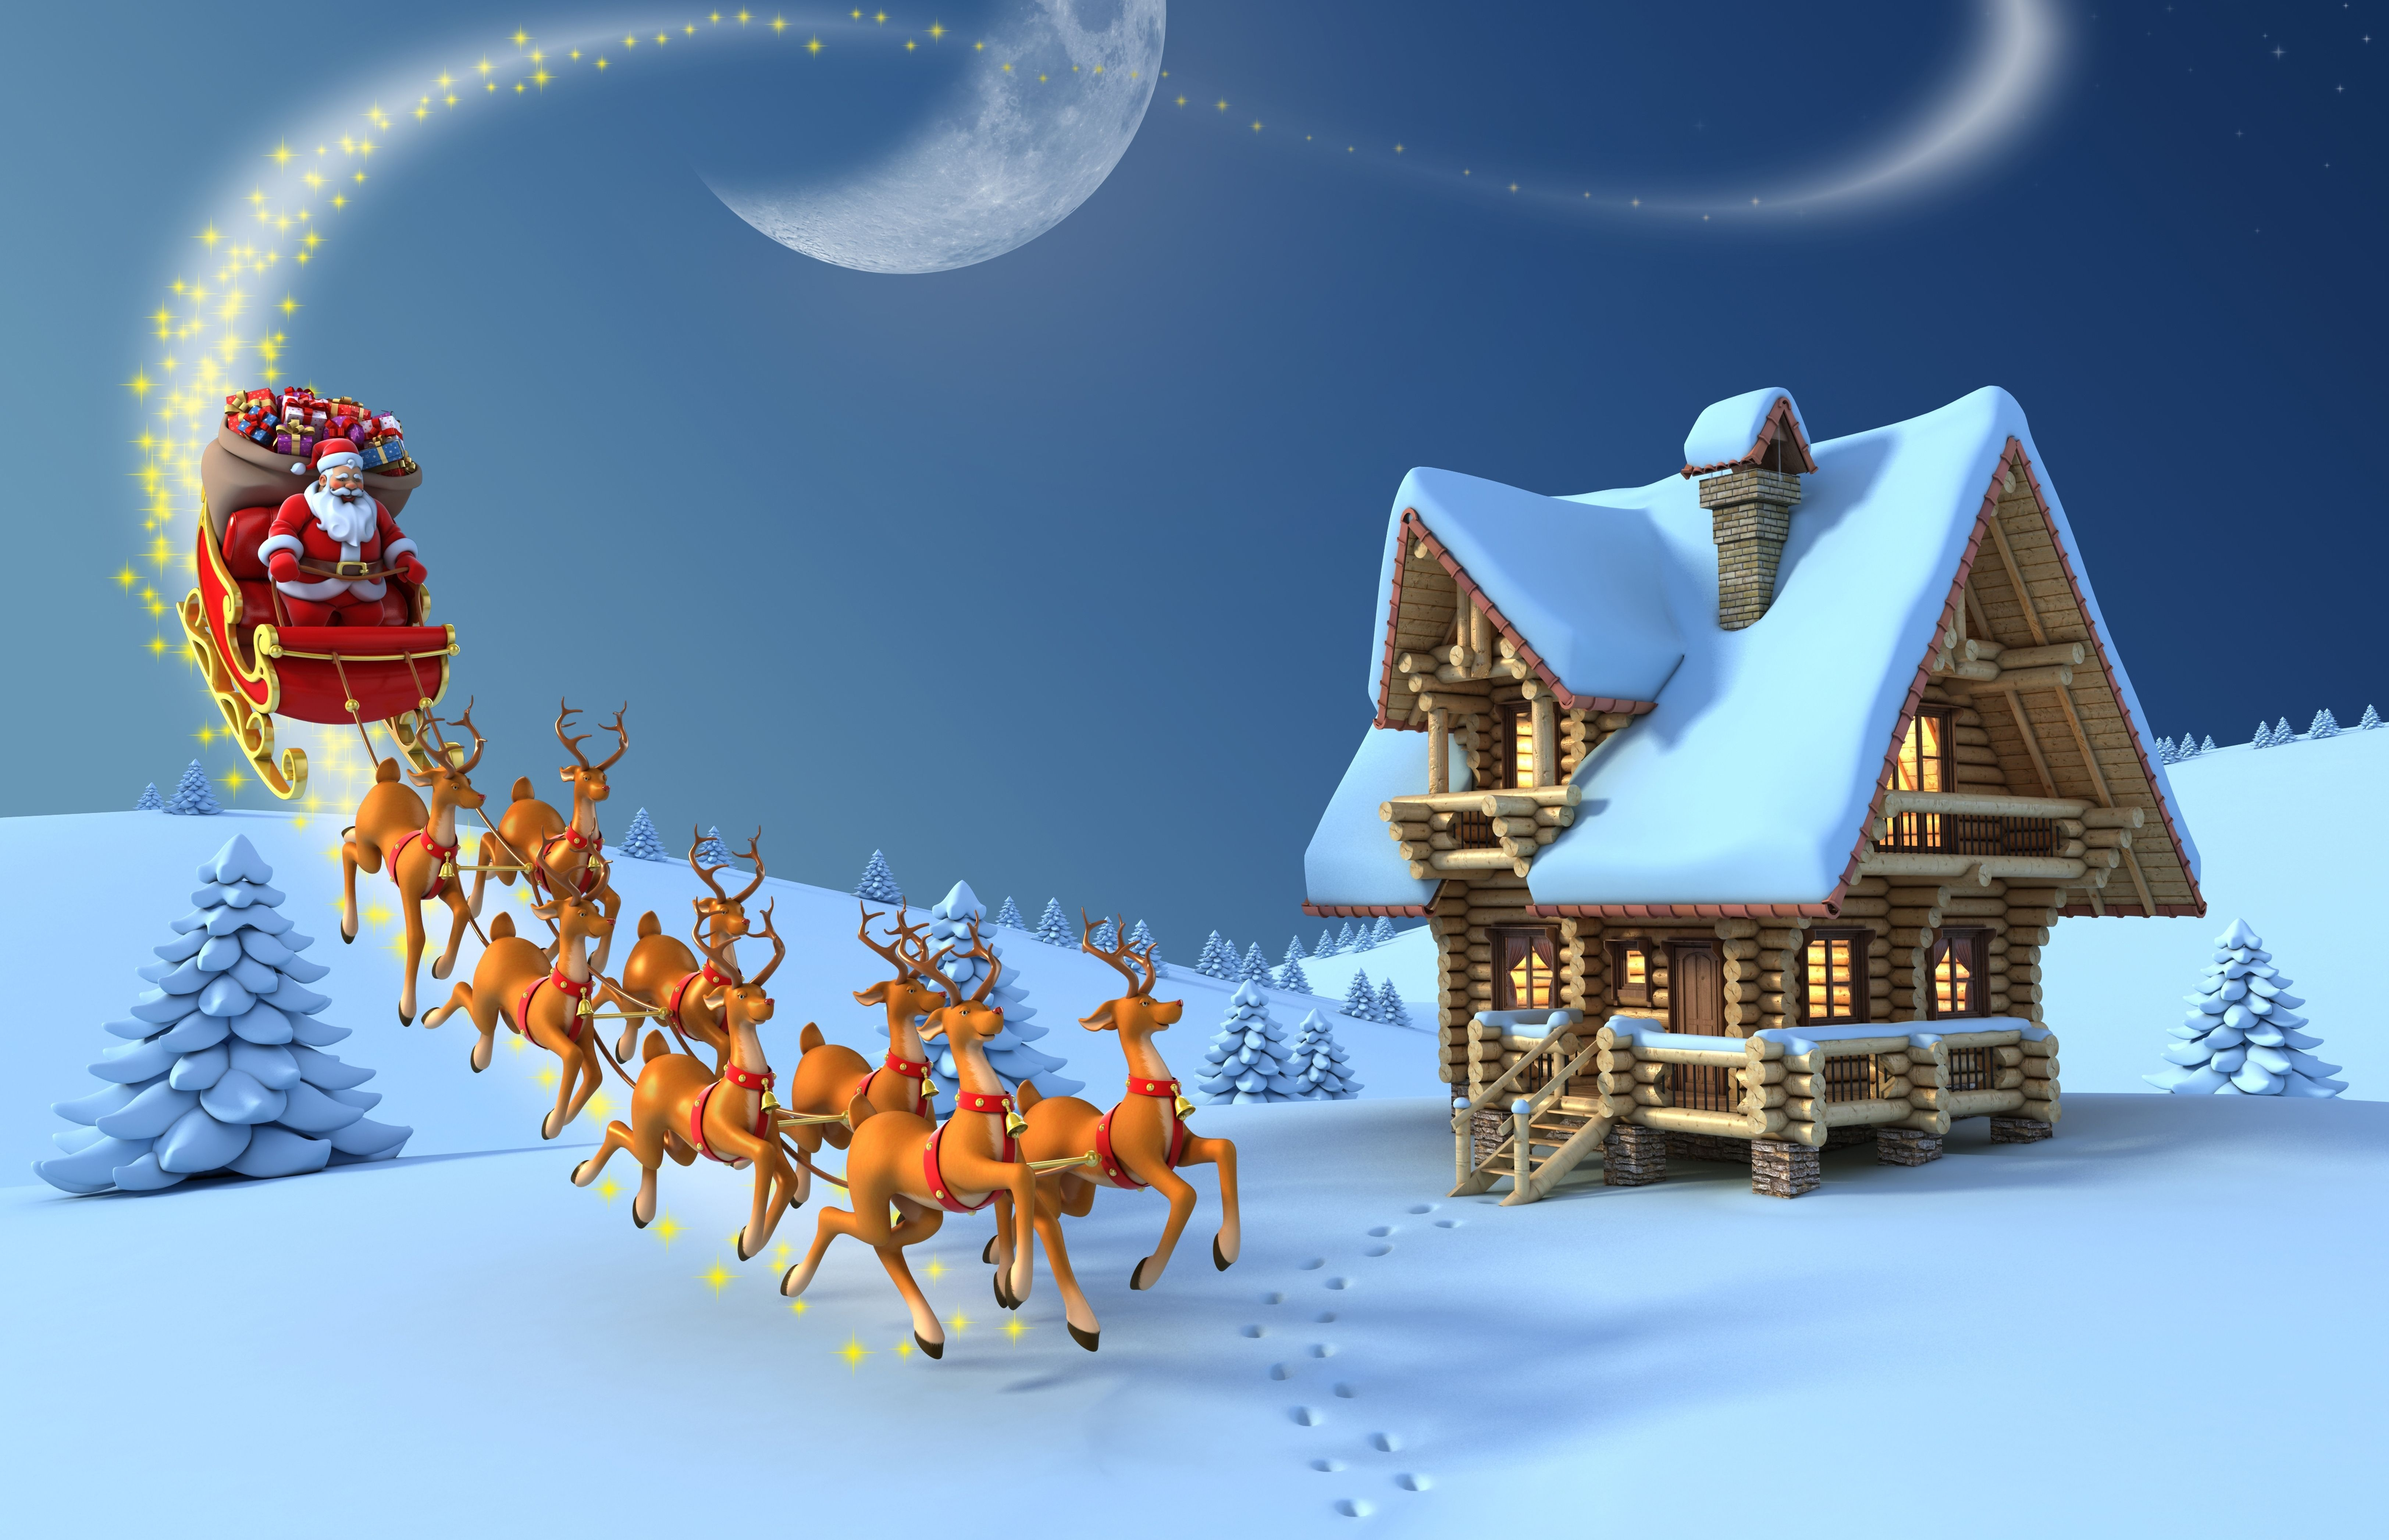 Christmas Wallpapers Free Download Merry Christmas Wallpaper Santa Claus Wallpaper Christmas Wallpaper Free